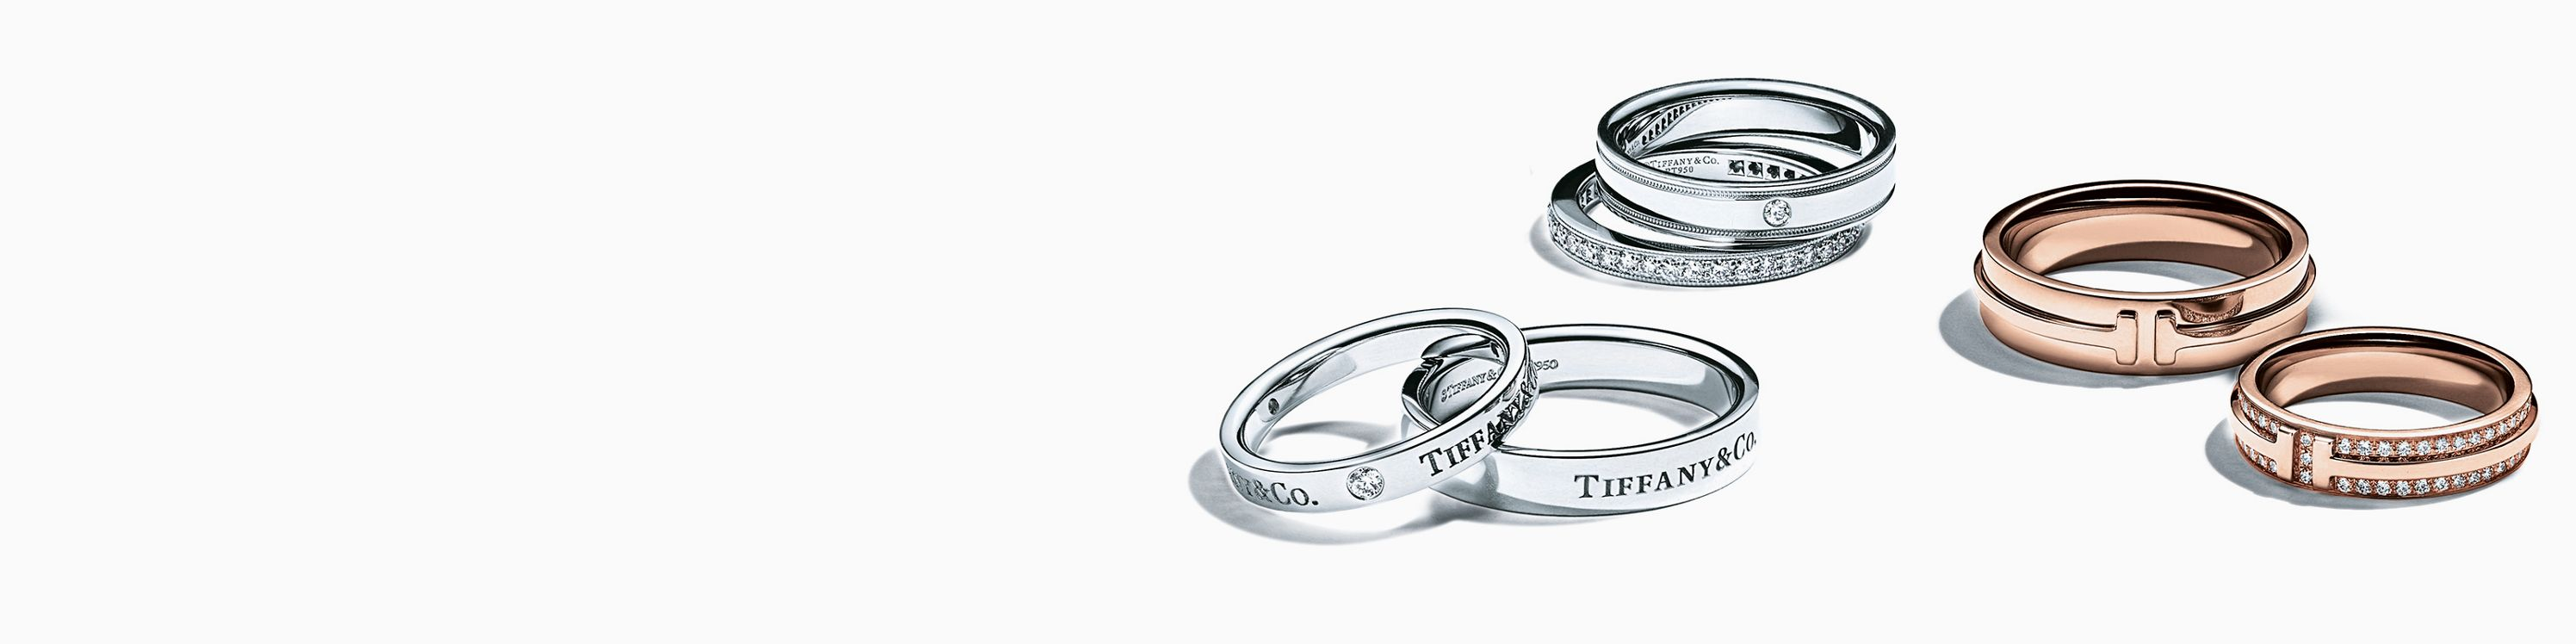 Shop Tiffany & Co. Wedding Band Sets